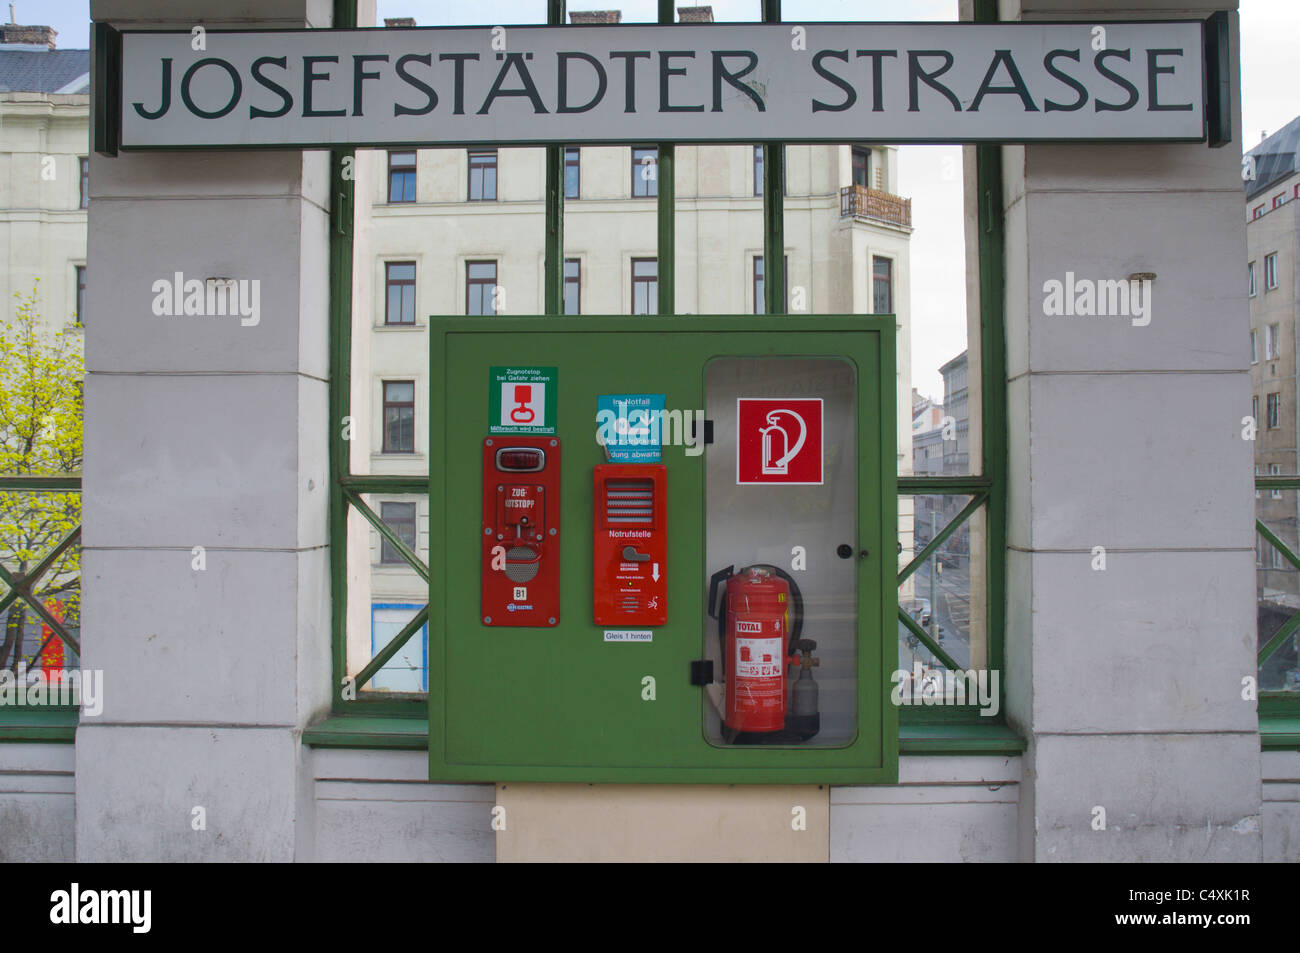 Fire safety equipment at Josefstädter strasse metro stop in Josefpstadt district Vienna Austria central Europe - Stock Image